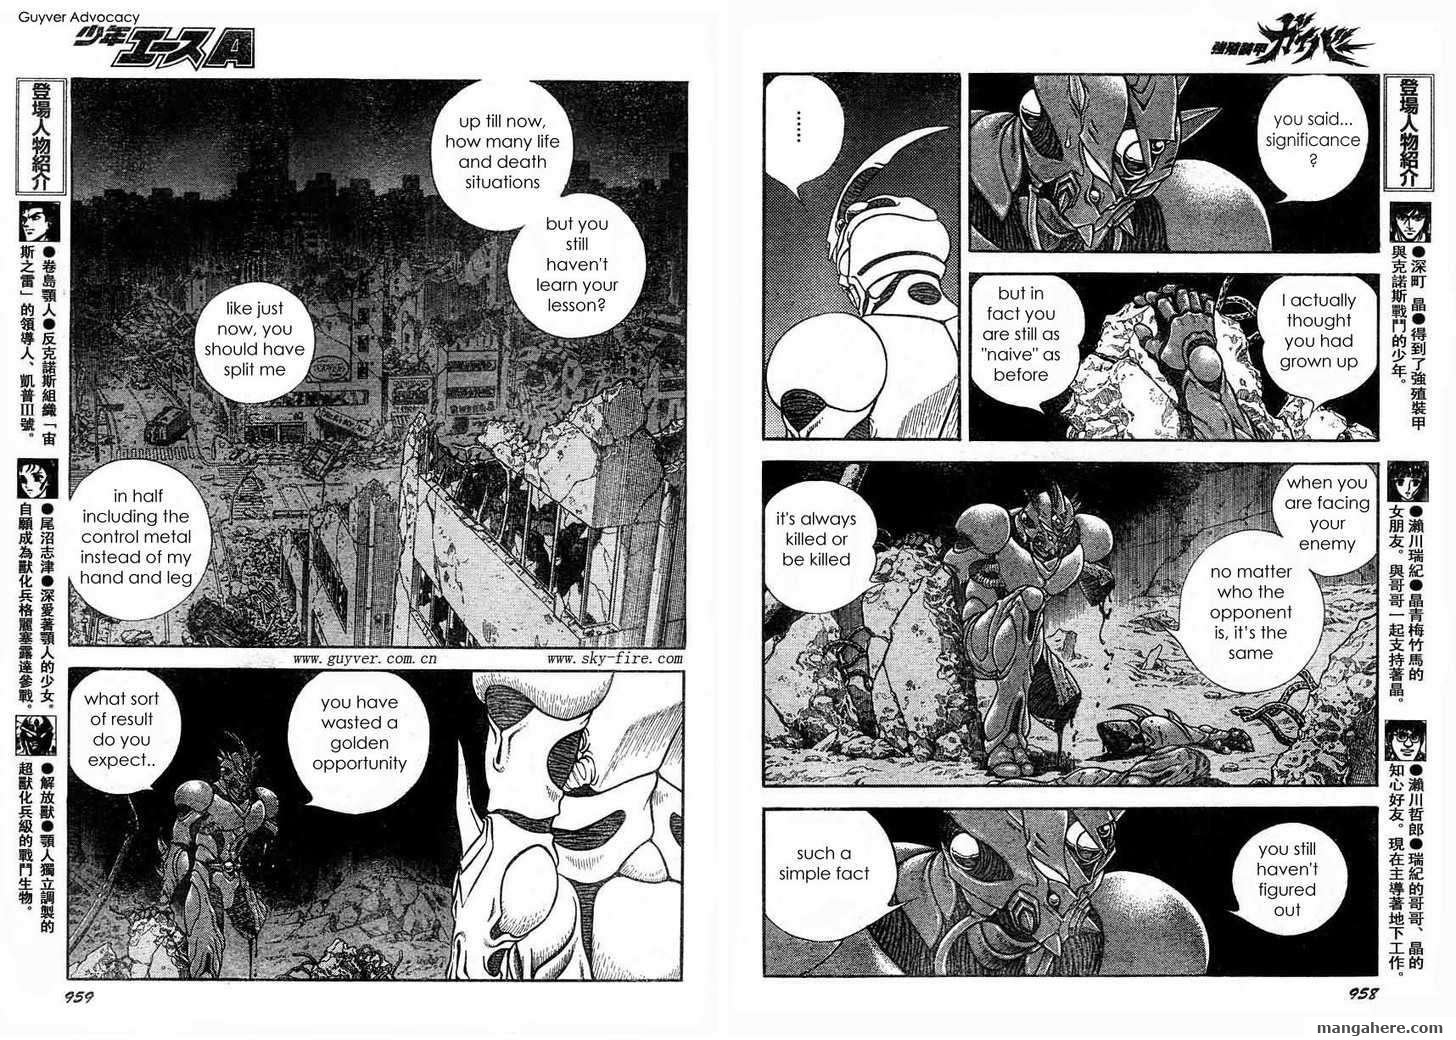 Guyver 180 Page 3